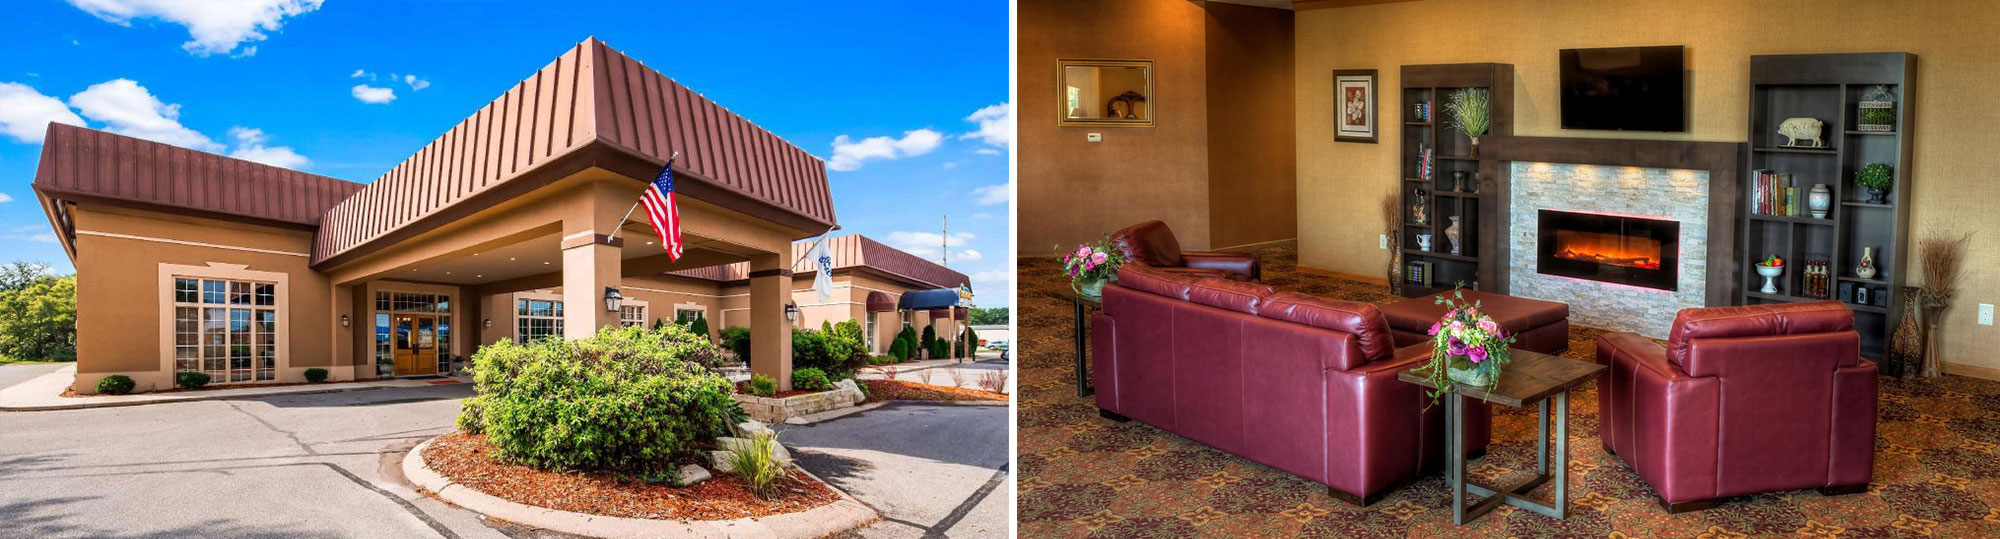 Boarders Inn and Suites Fairfield